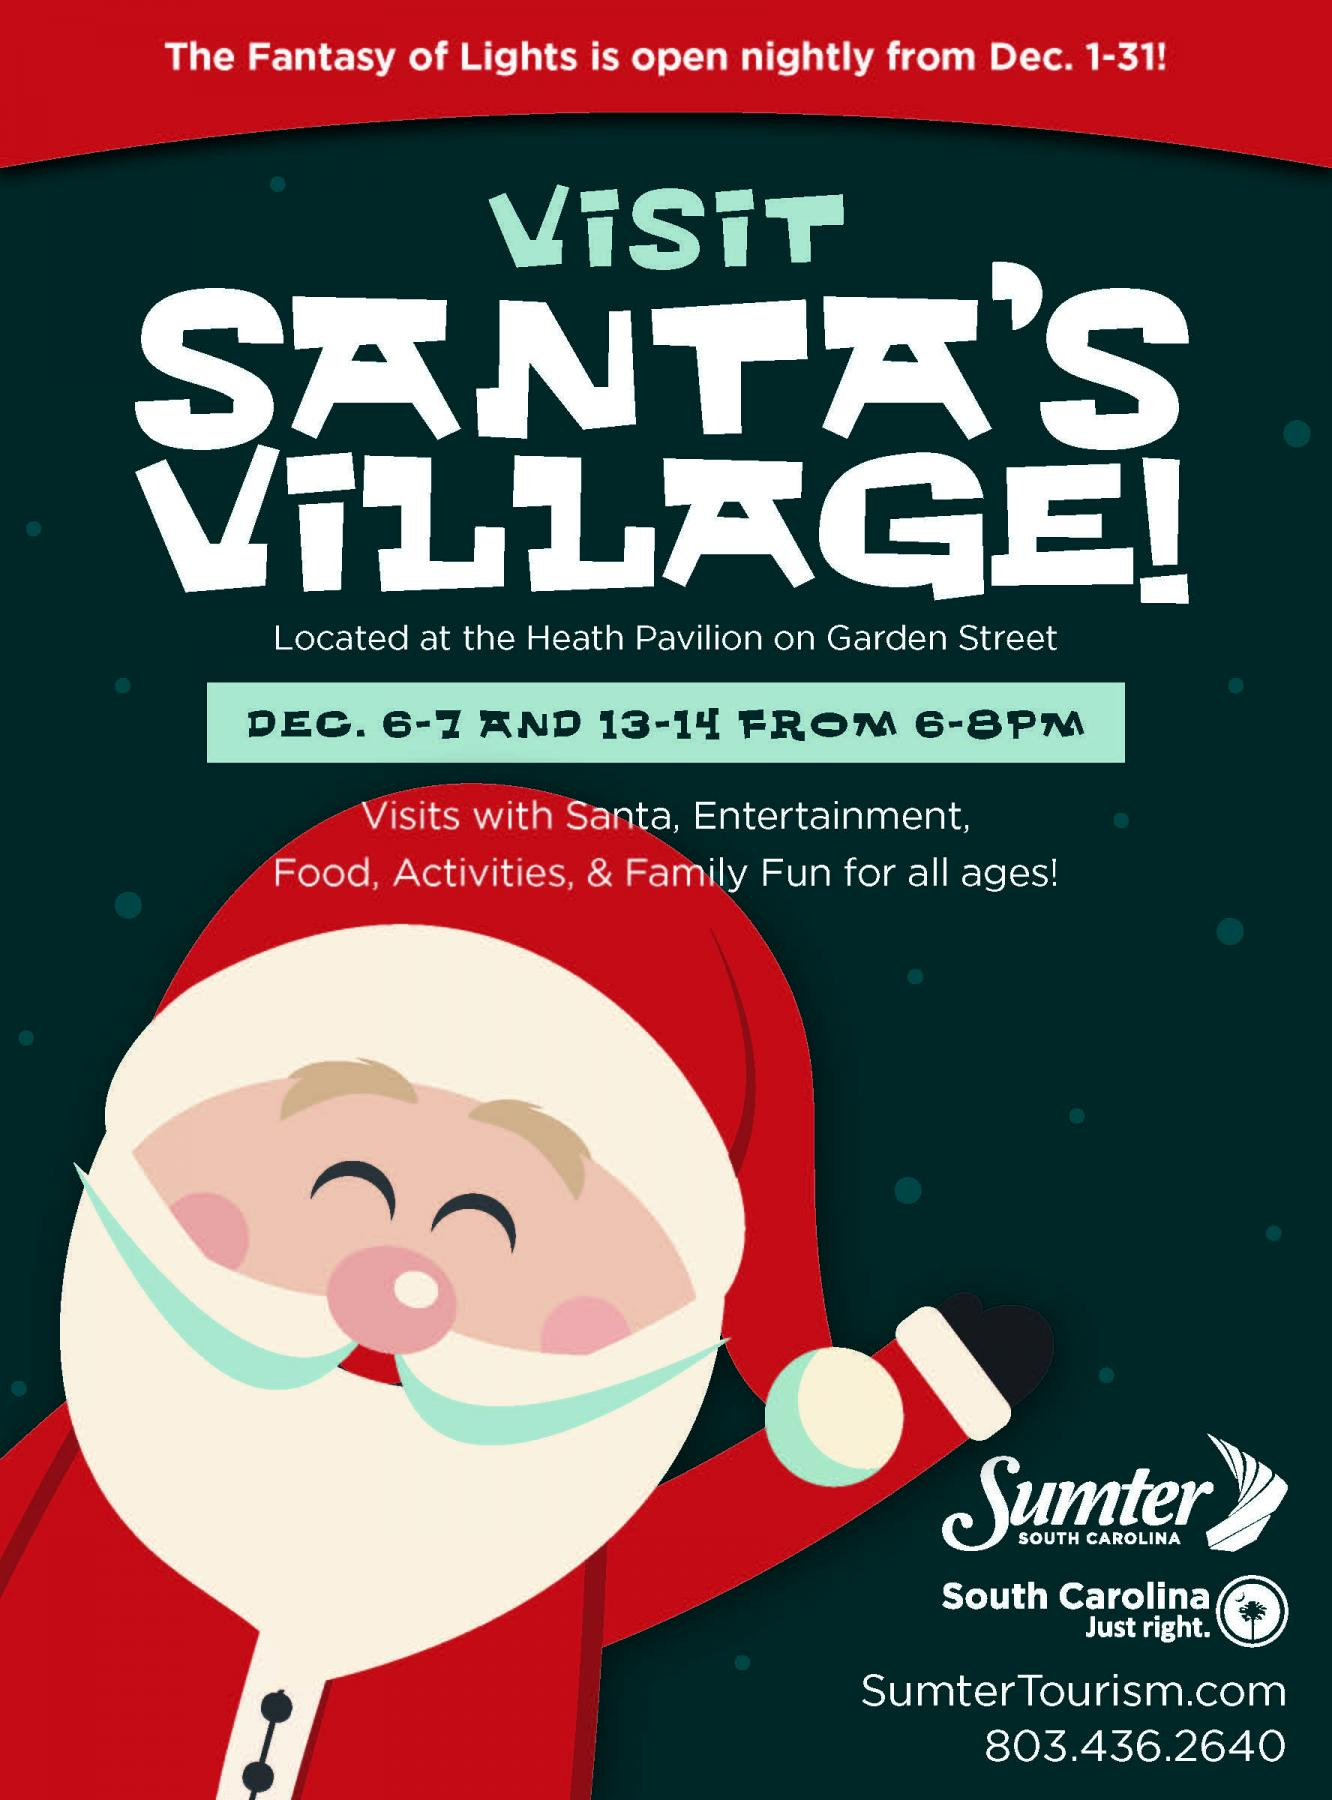 Santa's Village & Fantasy of Lights